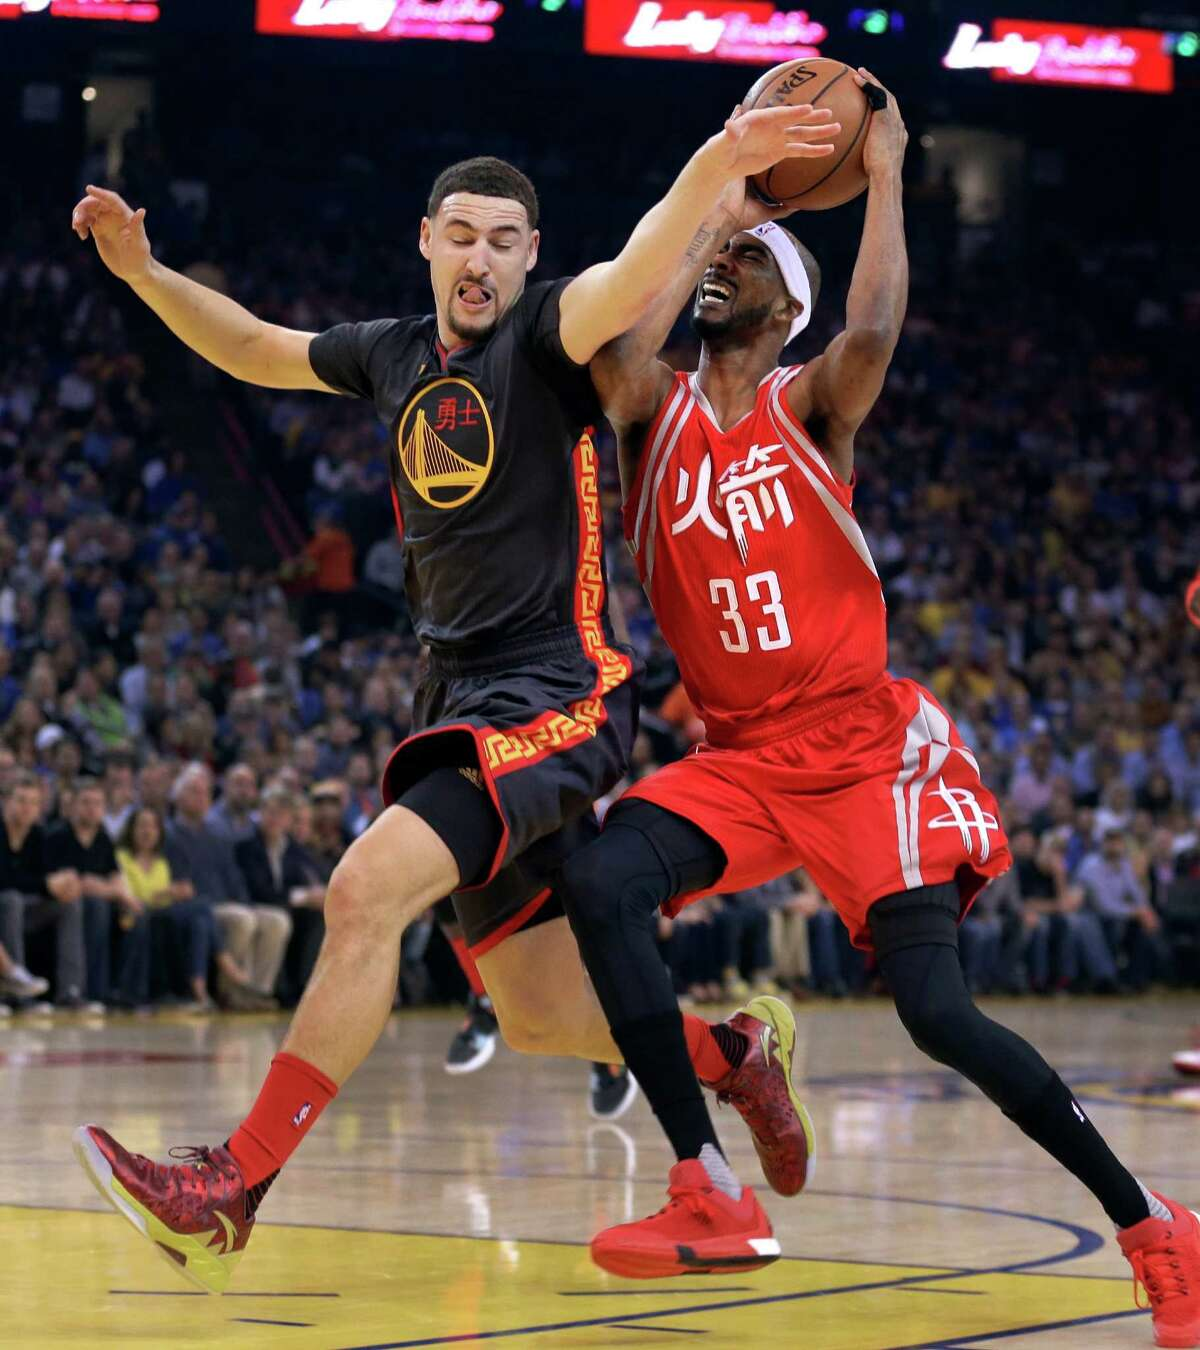 Houston Rockets' Corey Brewer, right, has his shot blocked by Golden State Warriors' Klay Thompson (11) during the first half of an NBA basketball game Tuesday, Feb. 9, 2016, in Oakland, Calif. (AP Photo/Ben Margot)